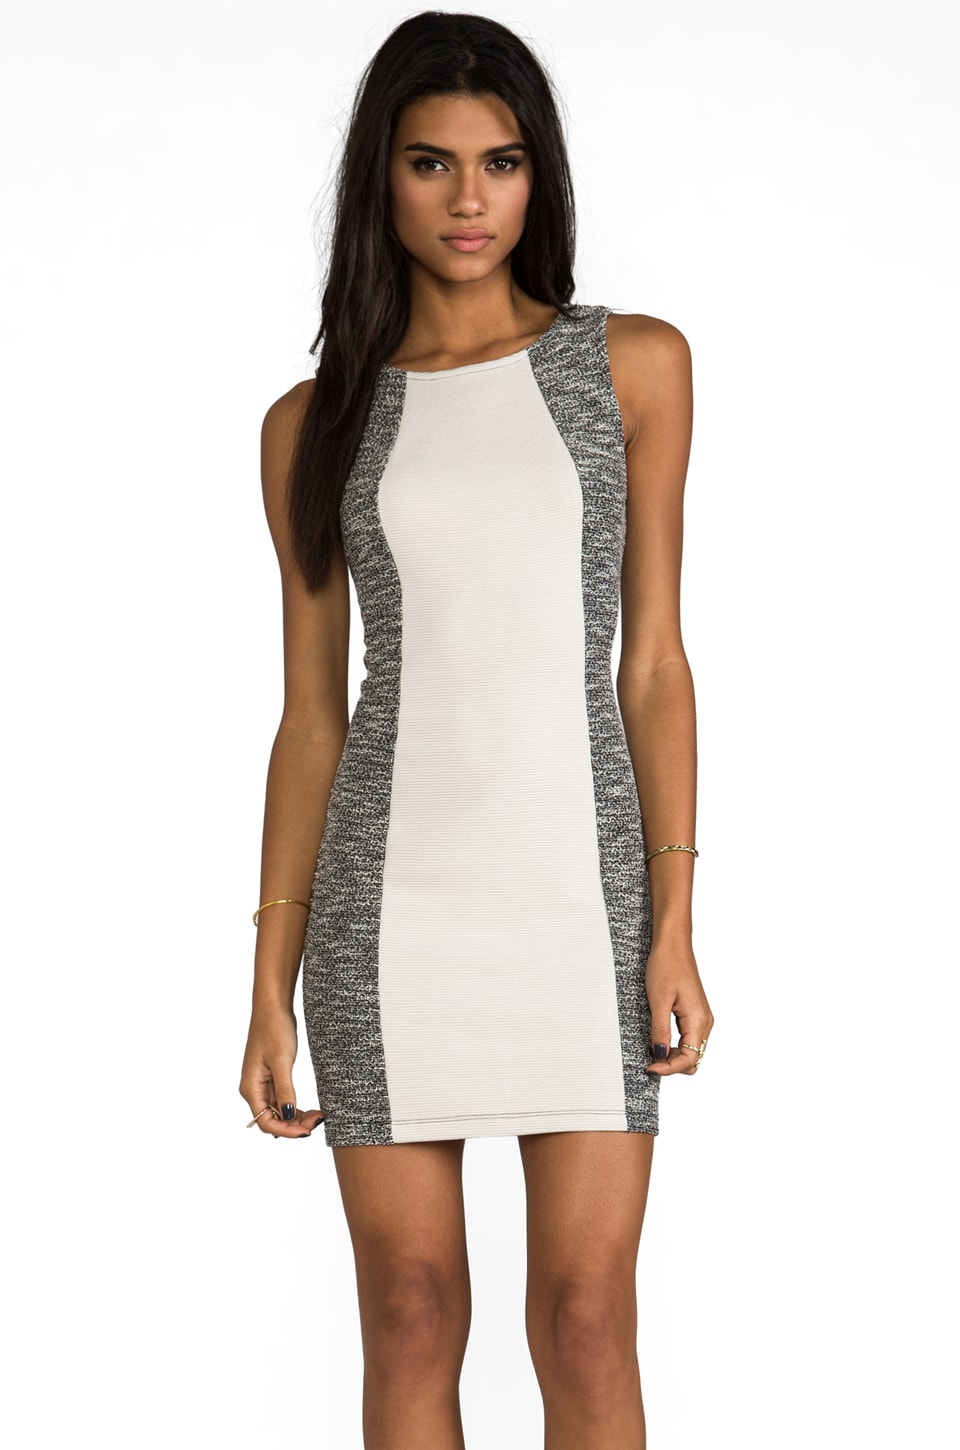 Kain Paley Dress in Black & White Speckled